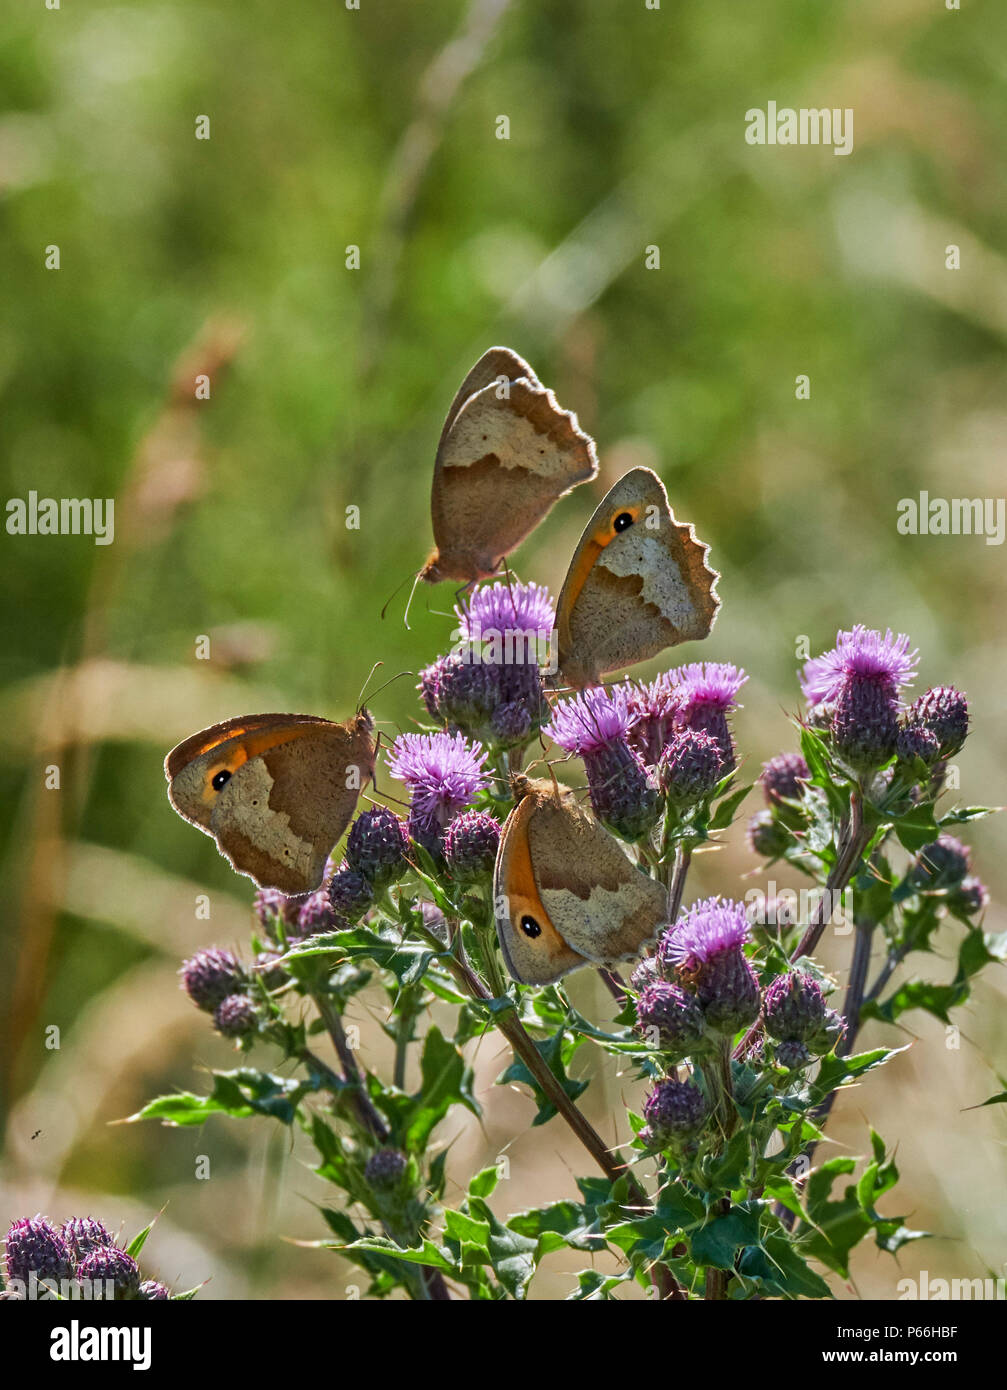 Meadow Brown butterflies nectaring on thistle flowers. Hurst Meadows, East Molesey, Surrey, England. - Stock Image